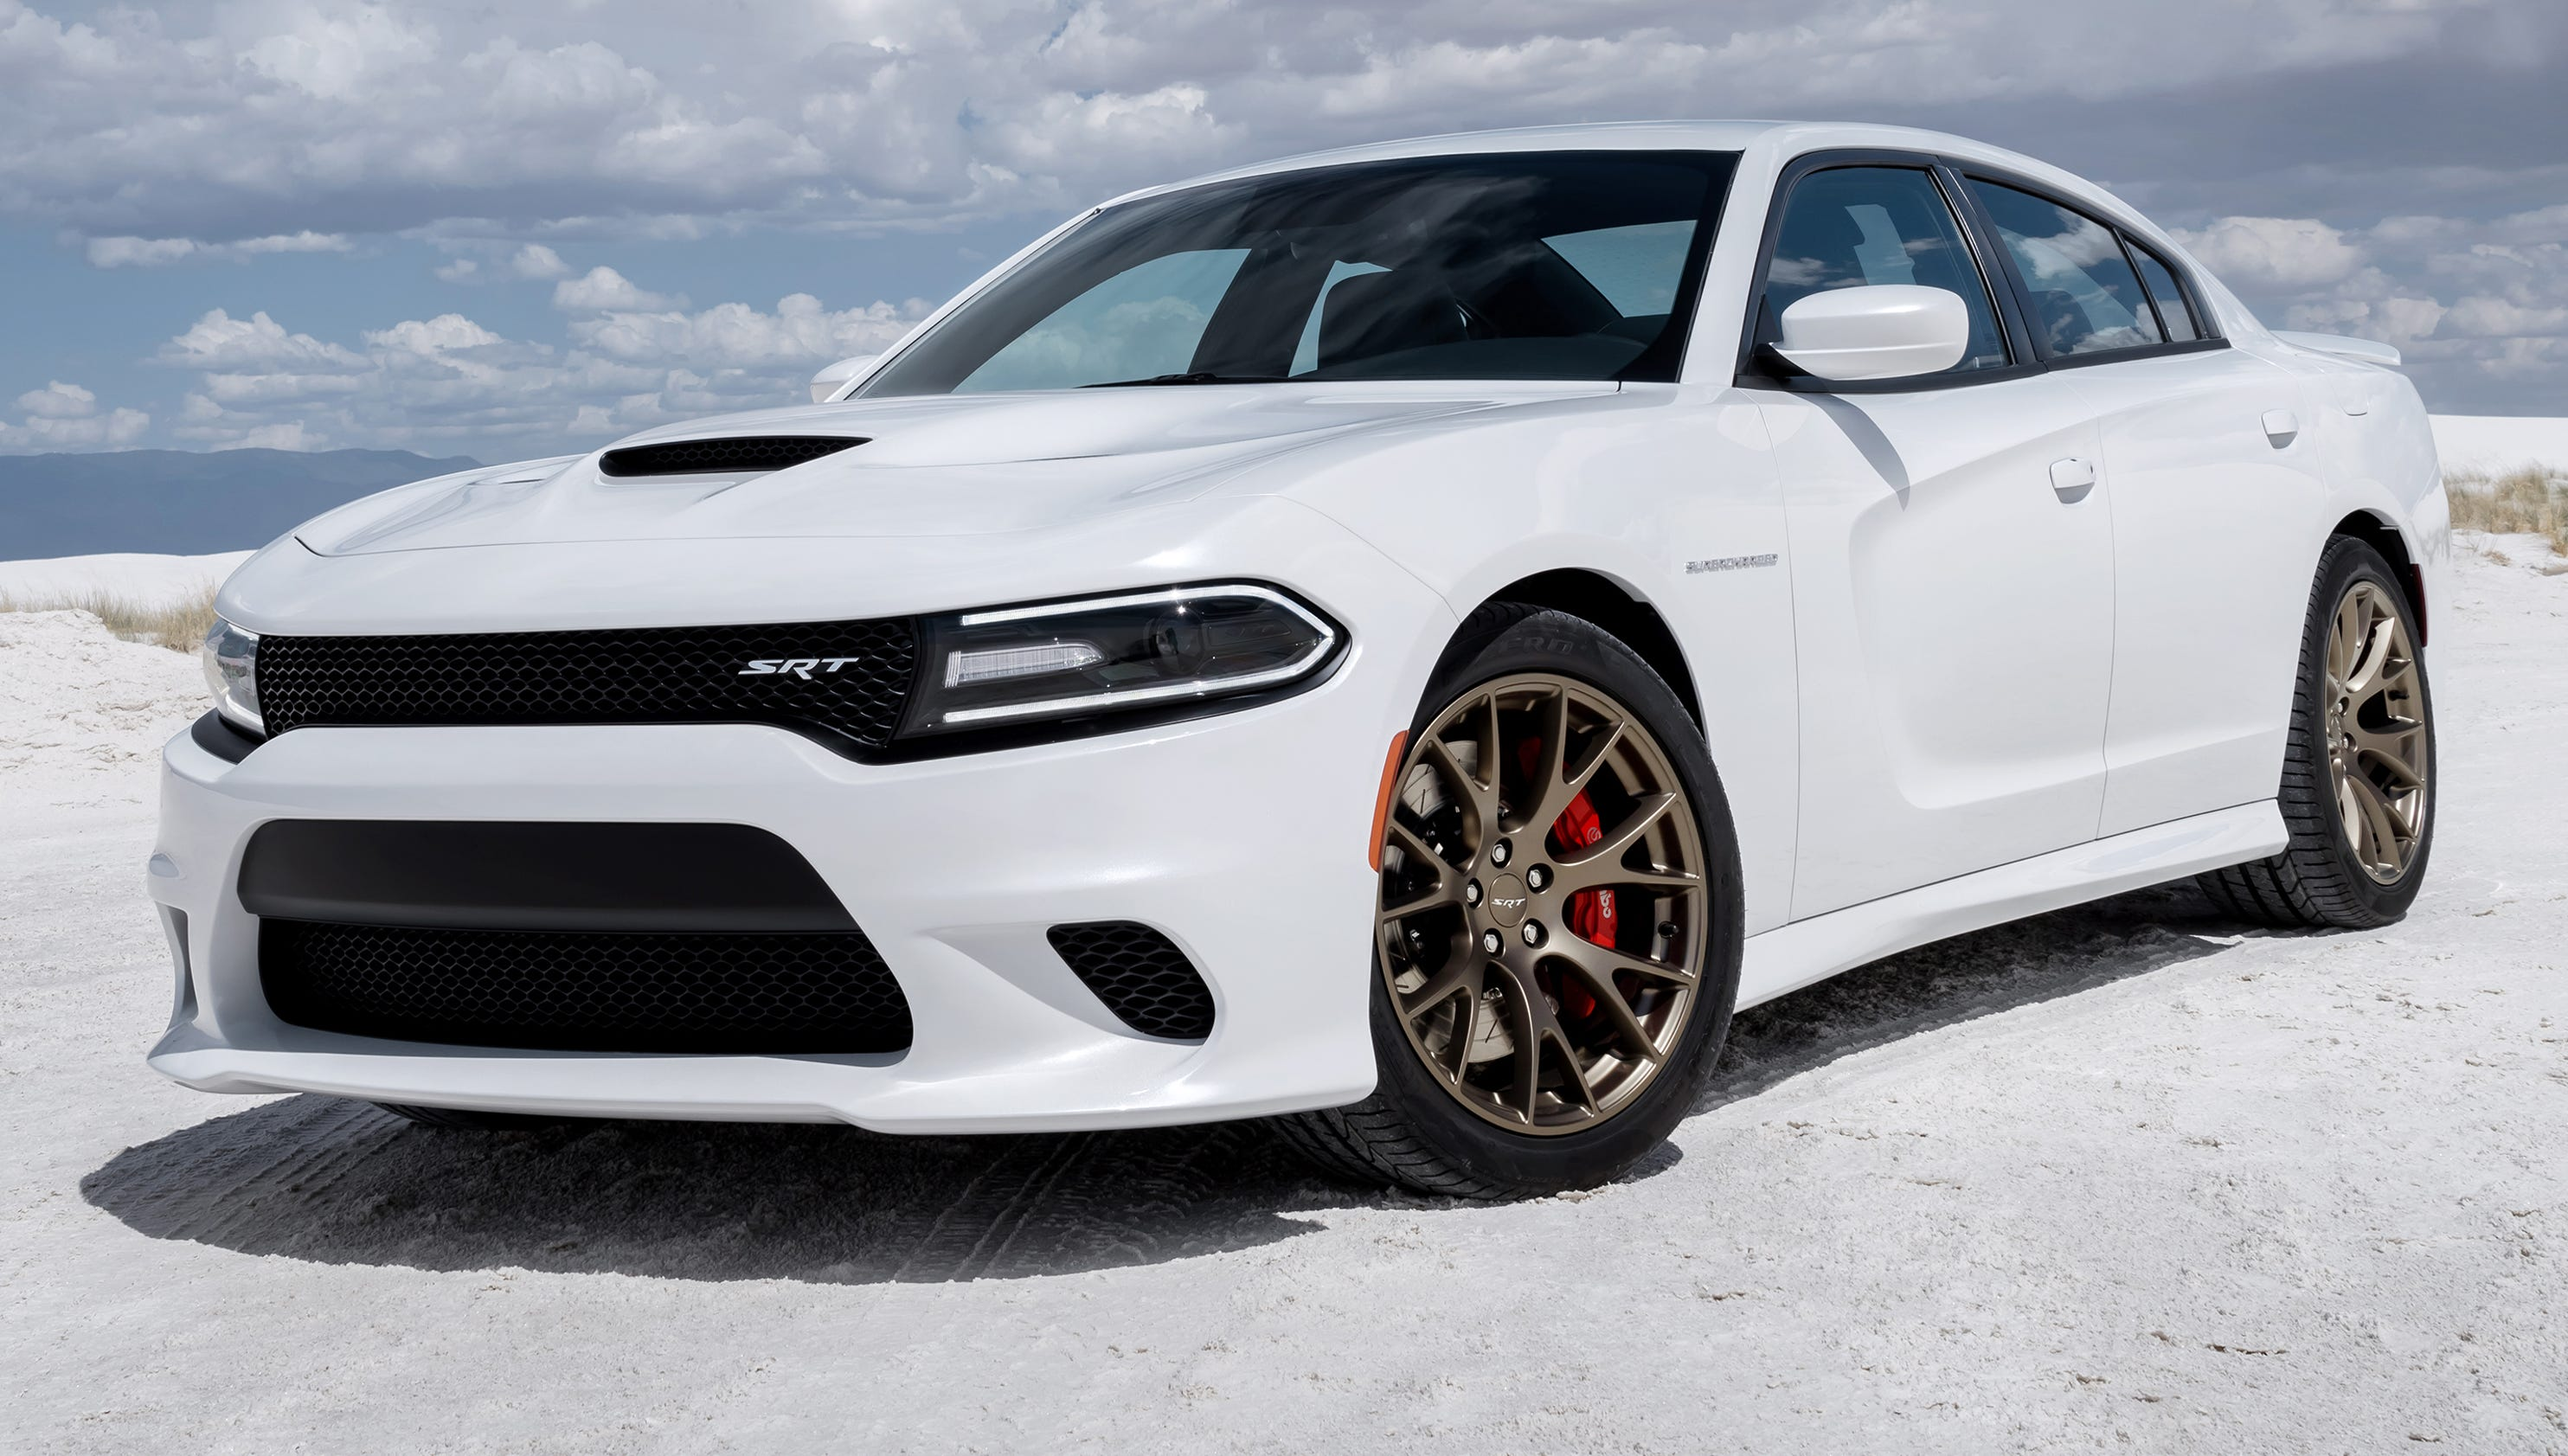 2019 Hellcat Charger >> Dodge Charger SRT Hellcat: 707 hp. family sedan